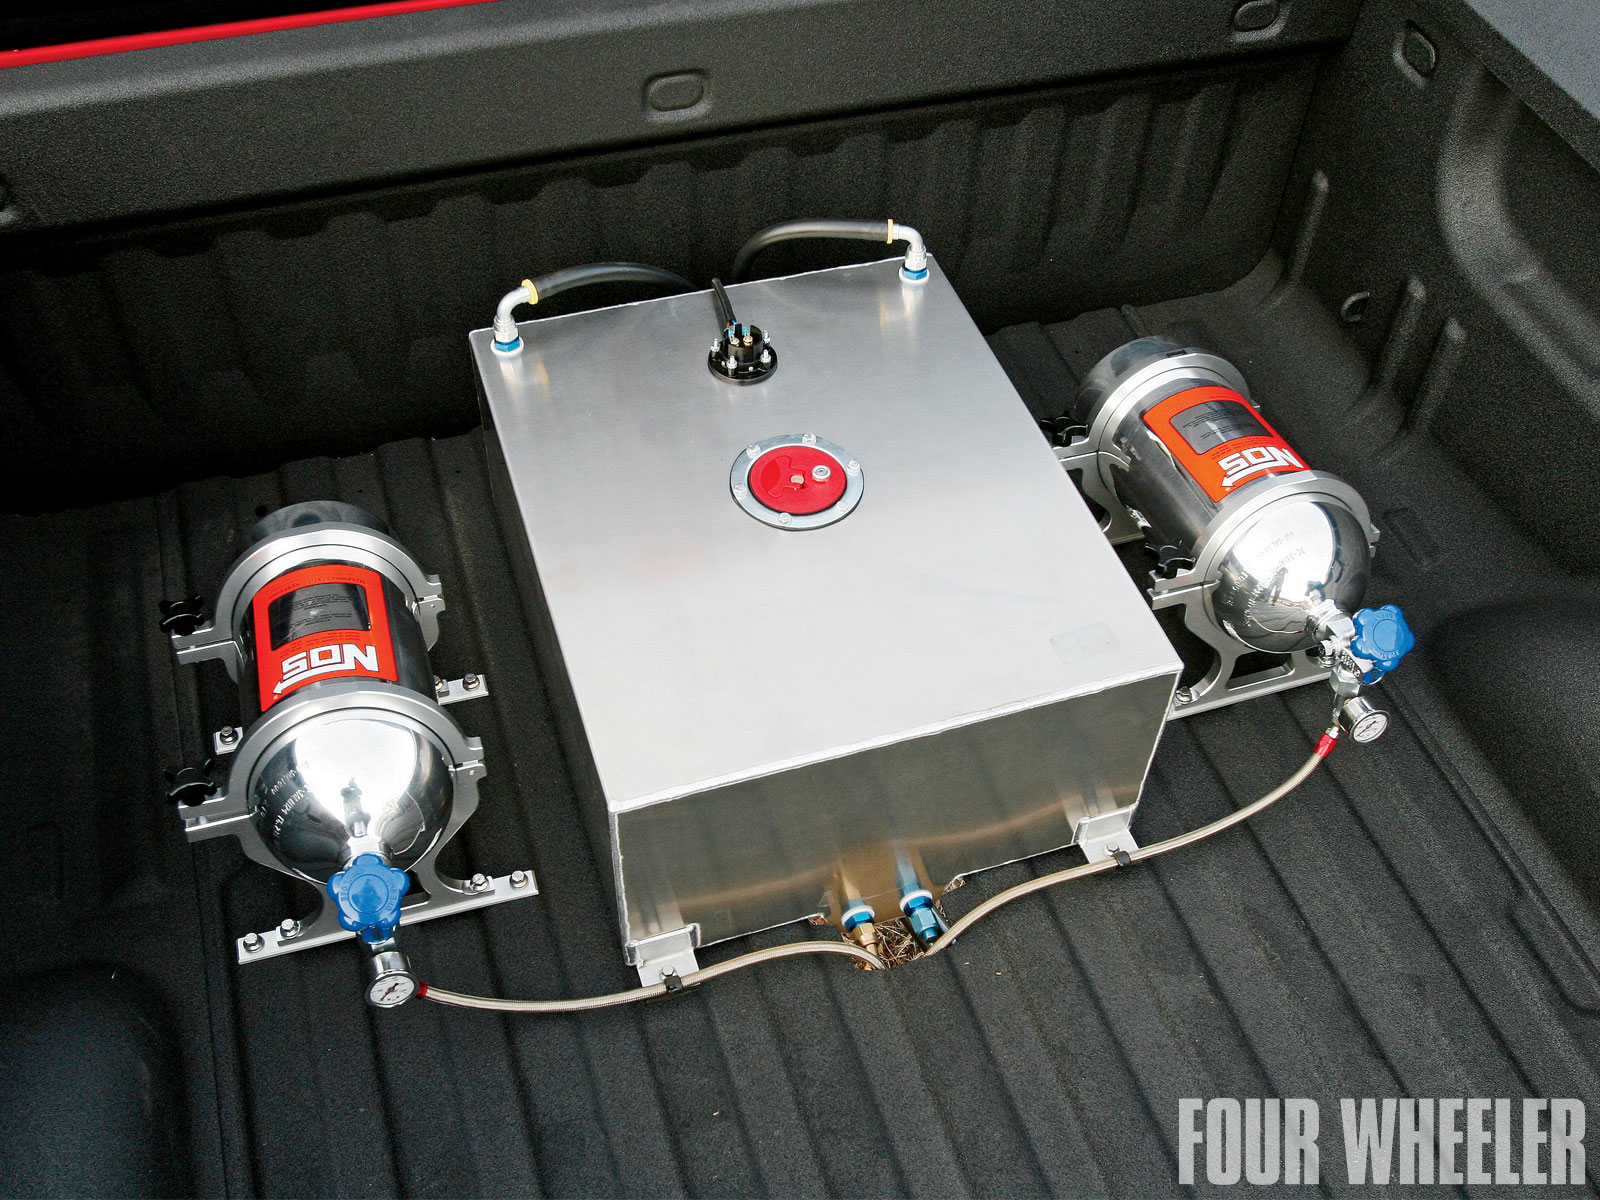 The modified Duramax turbodiesel is fed biodiesel via a bed-mounted JAZ Products 20-gallon fuel cell. Also in the Xtreme Liners-lined cargo area is a pair of Nitrous Oxide Systems (NOS) 10-pound tanks. When we photographed the truck, the nitrous system was not yet operational, but Bigfoot says that when it is, the truck will undergo dyno tuning to coordinate the fuel system and programming mods so that it can all work in harmony. NOS says the system generates 75 horsepower in stock applications.